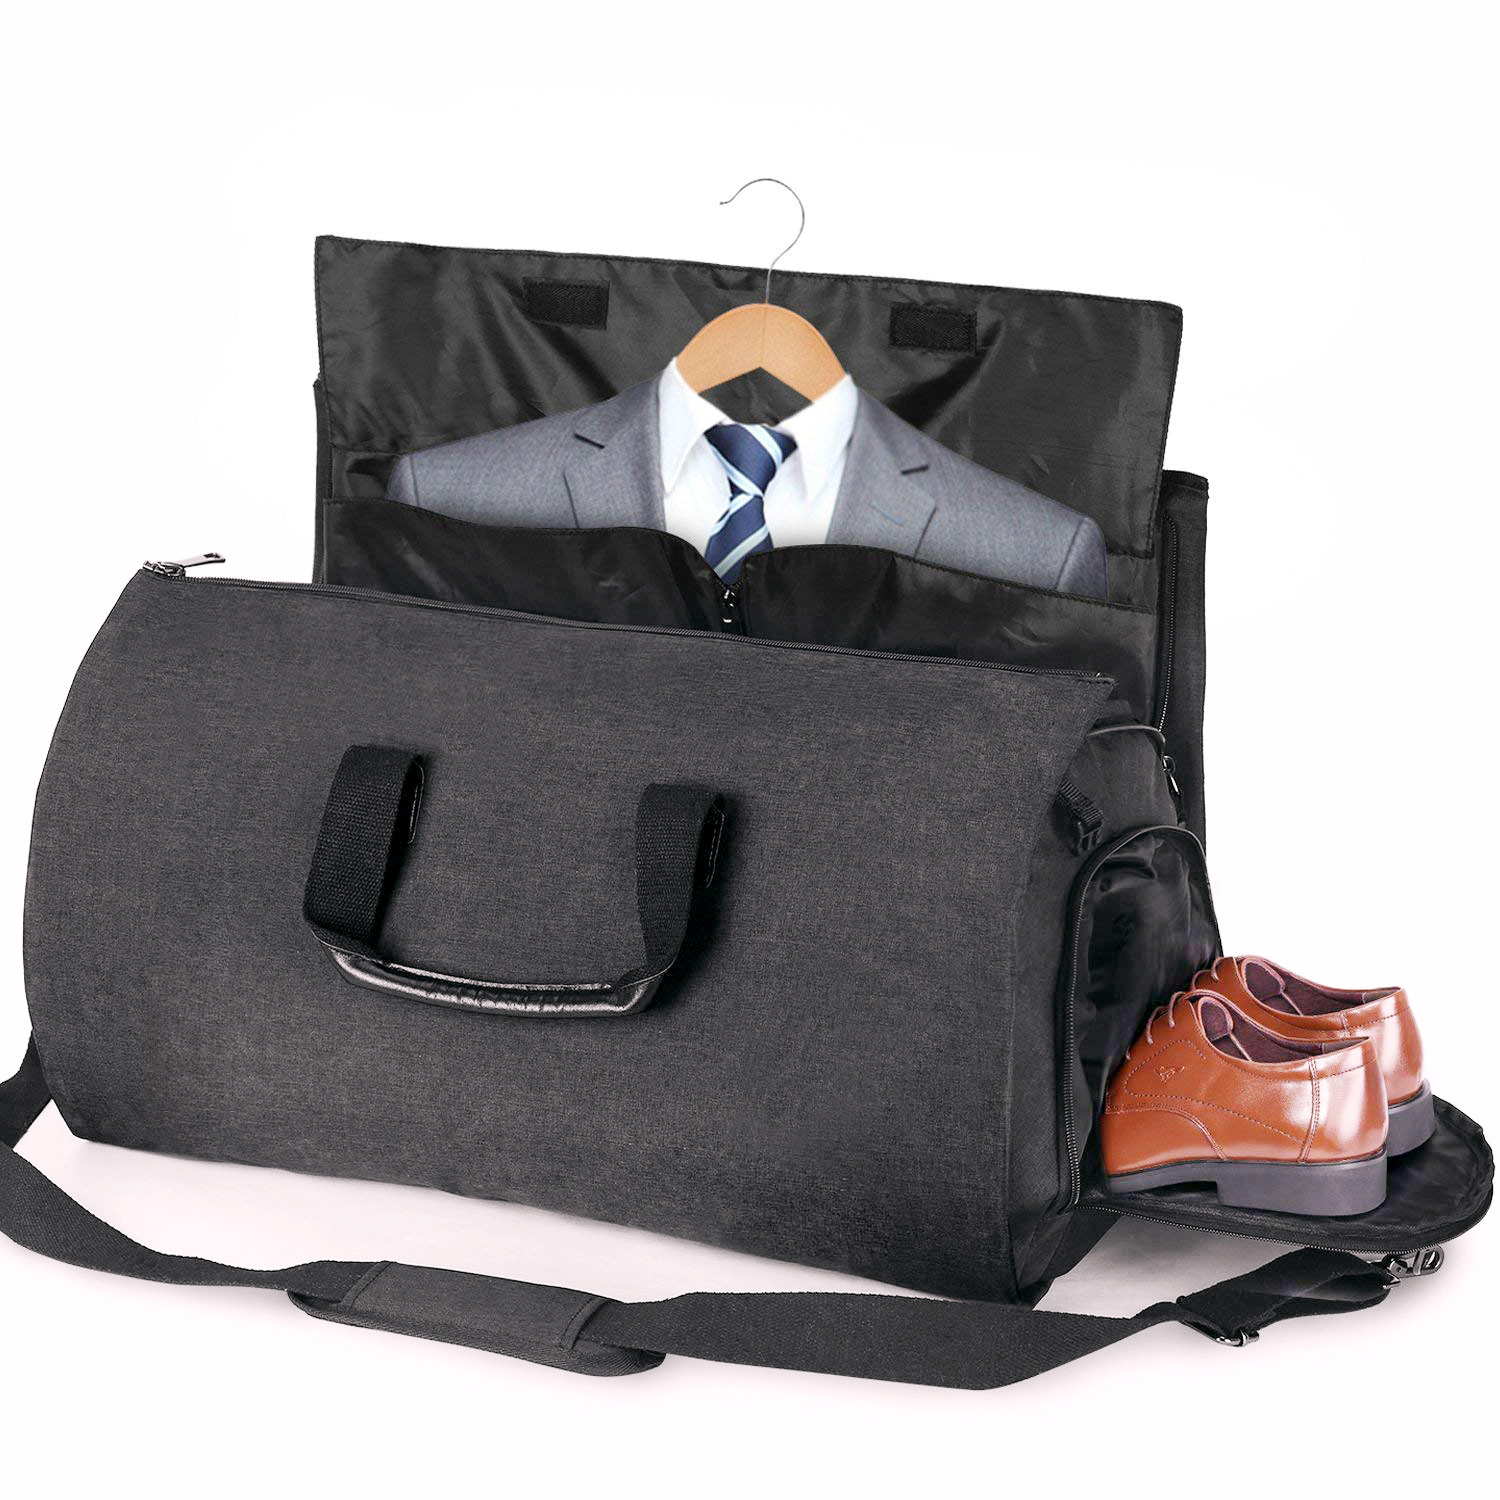 Details About 2 In 1 Convertible Garment Suit Travel Gym Bag Carry On Duffle Luggage Large